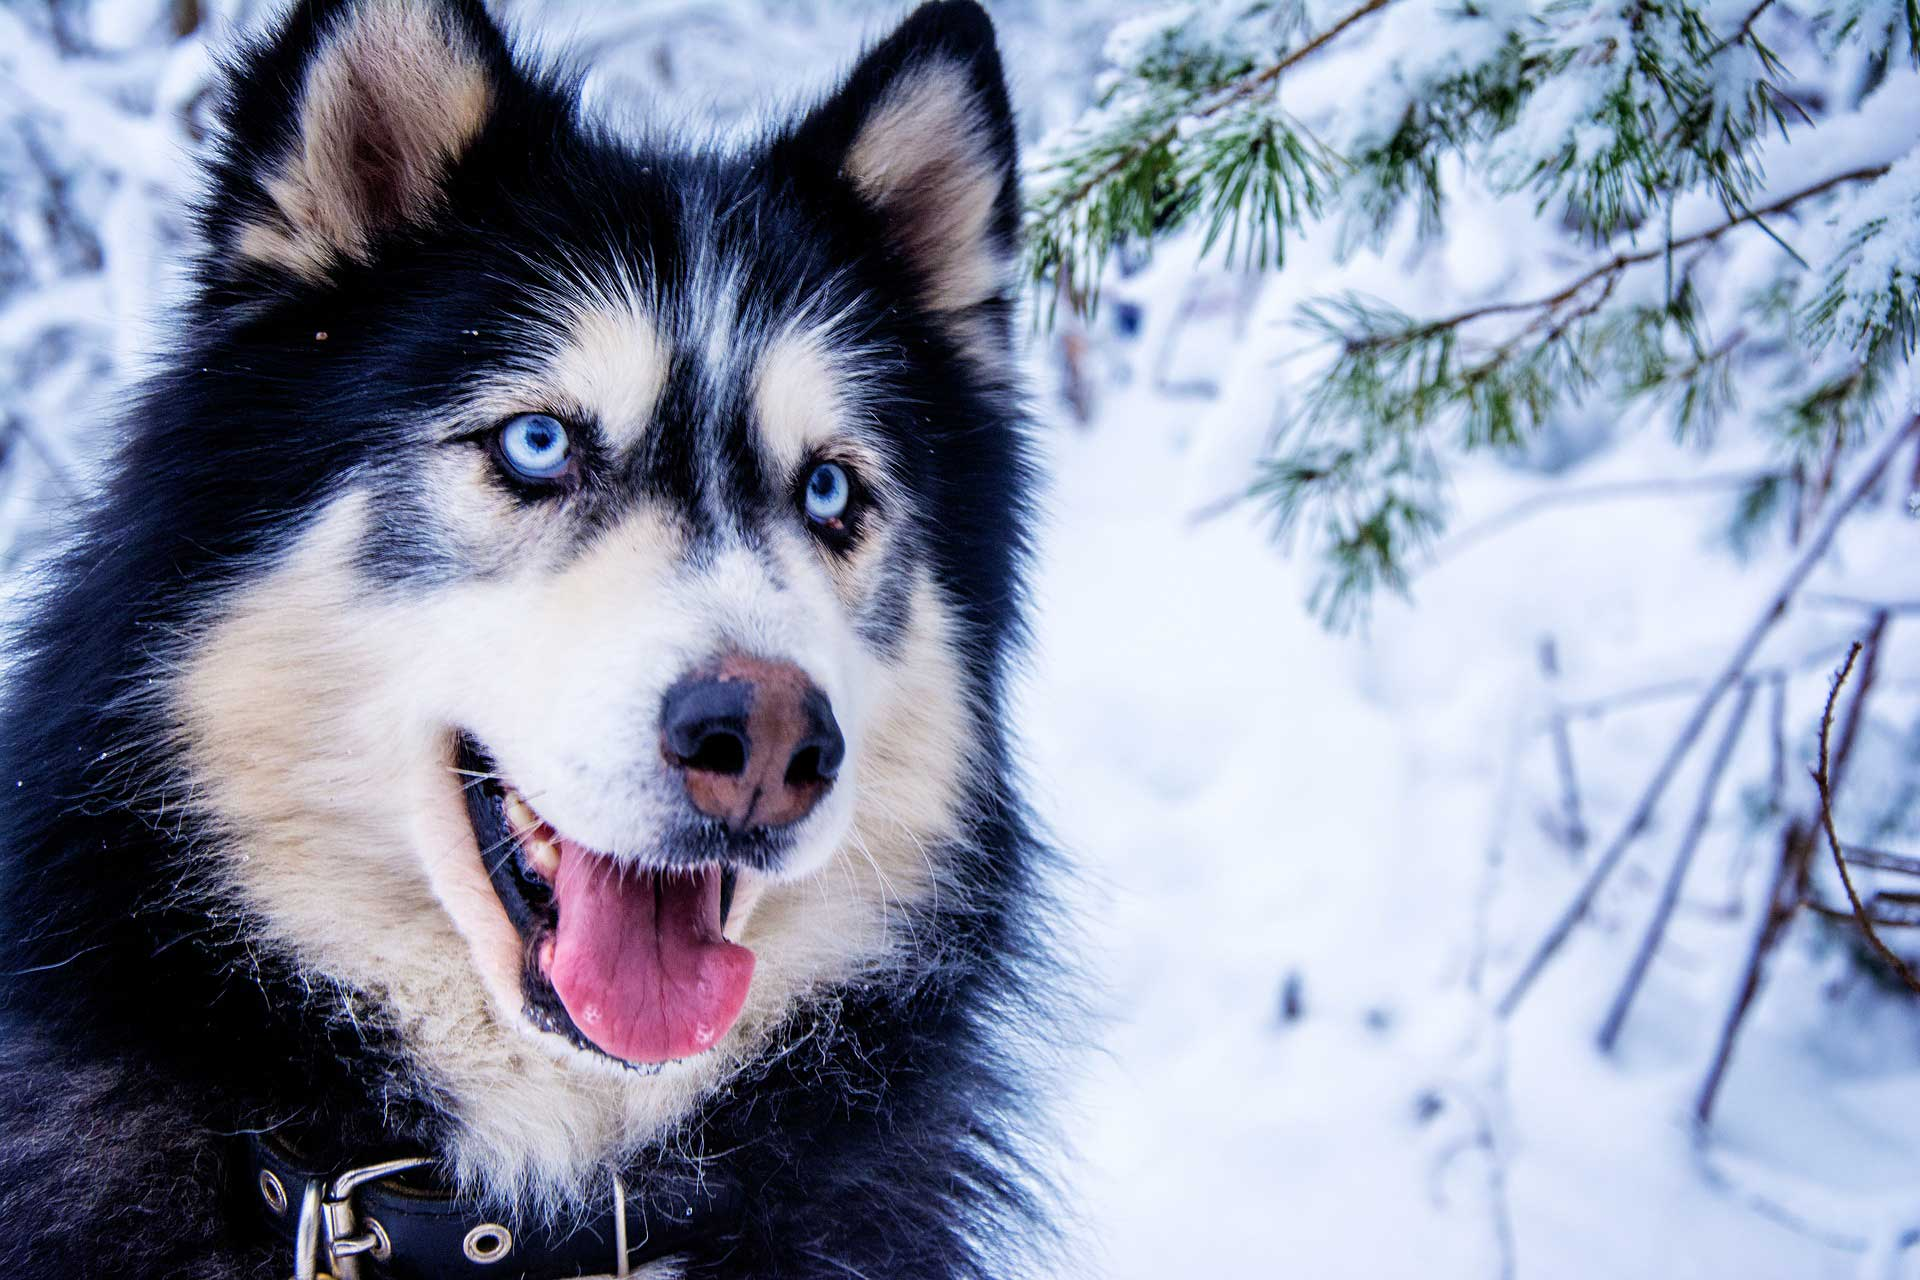 Extra Dna Produces Blue Eyes In Huskies Genetics Sci News Com